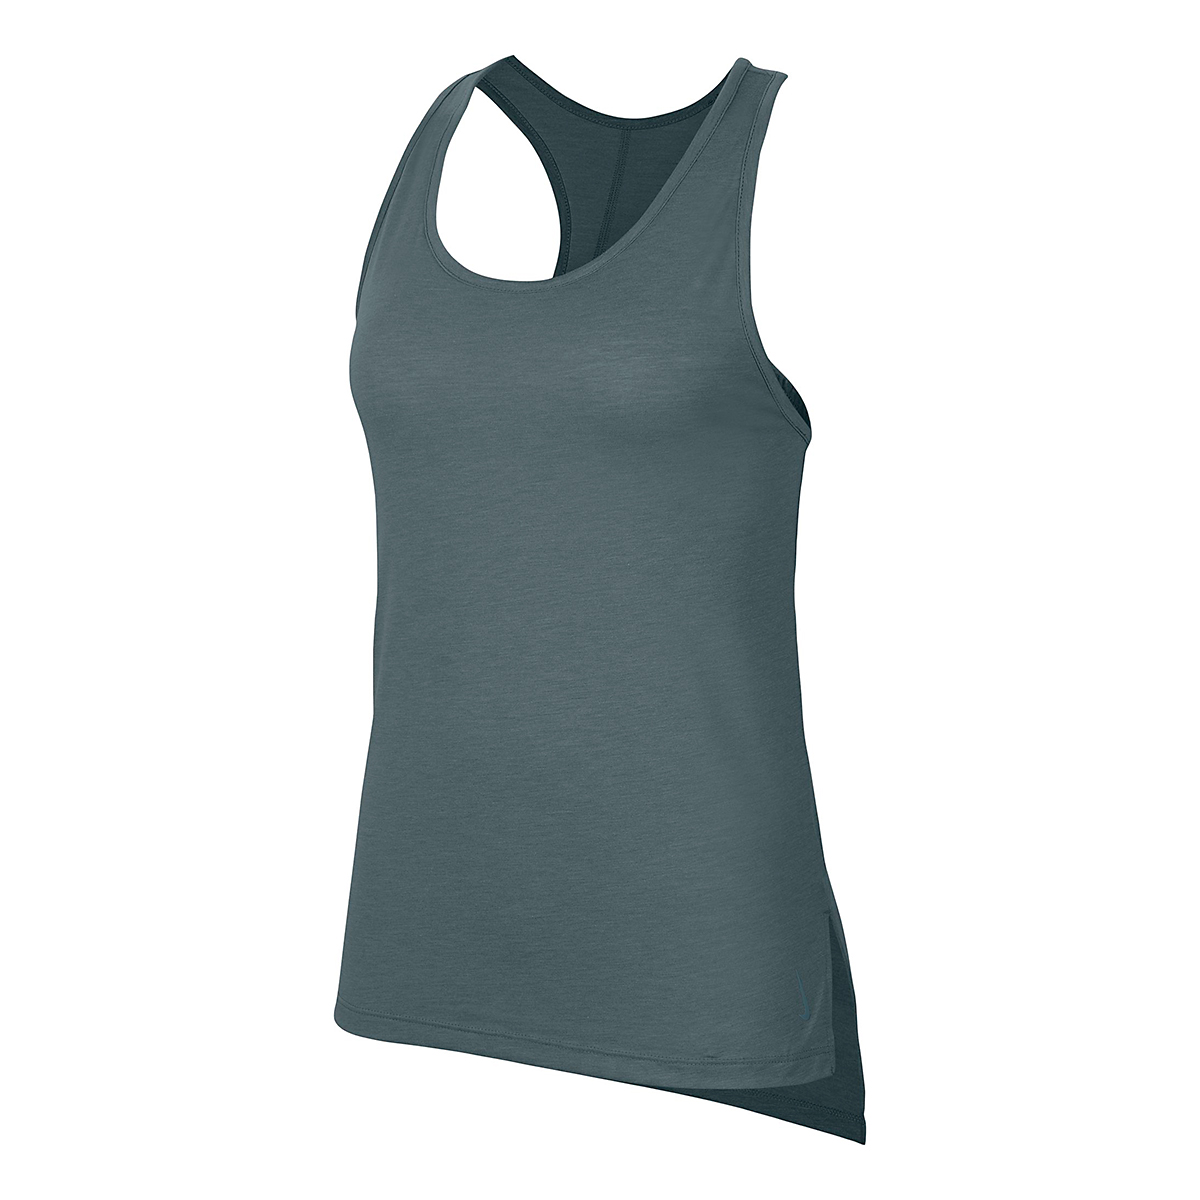 Women's Nike Yoga Layer Tank - Color: Hasta/Heather/Light Pumice/Dark Teal Green - Size: XS, Hasta/Heather/Light Pumice/Dark Teal Green, large, image 2